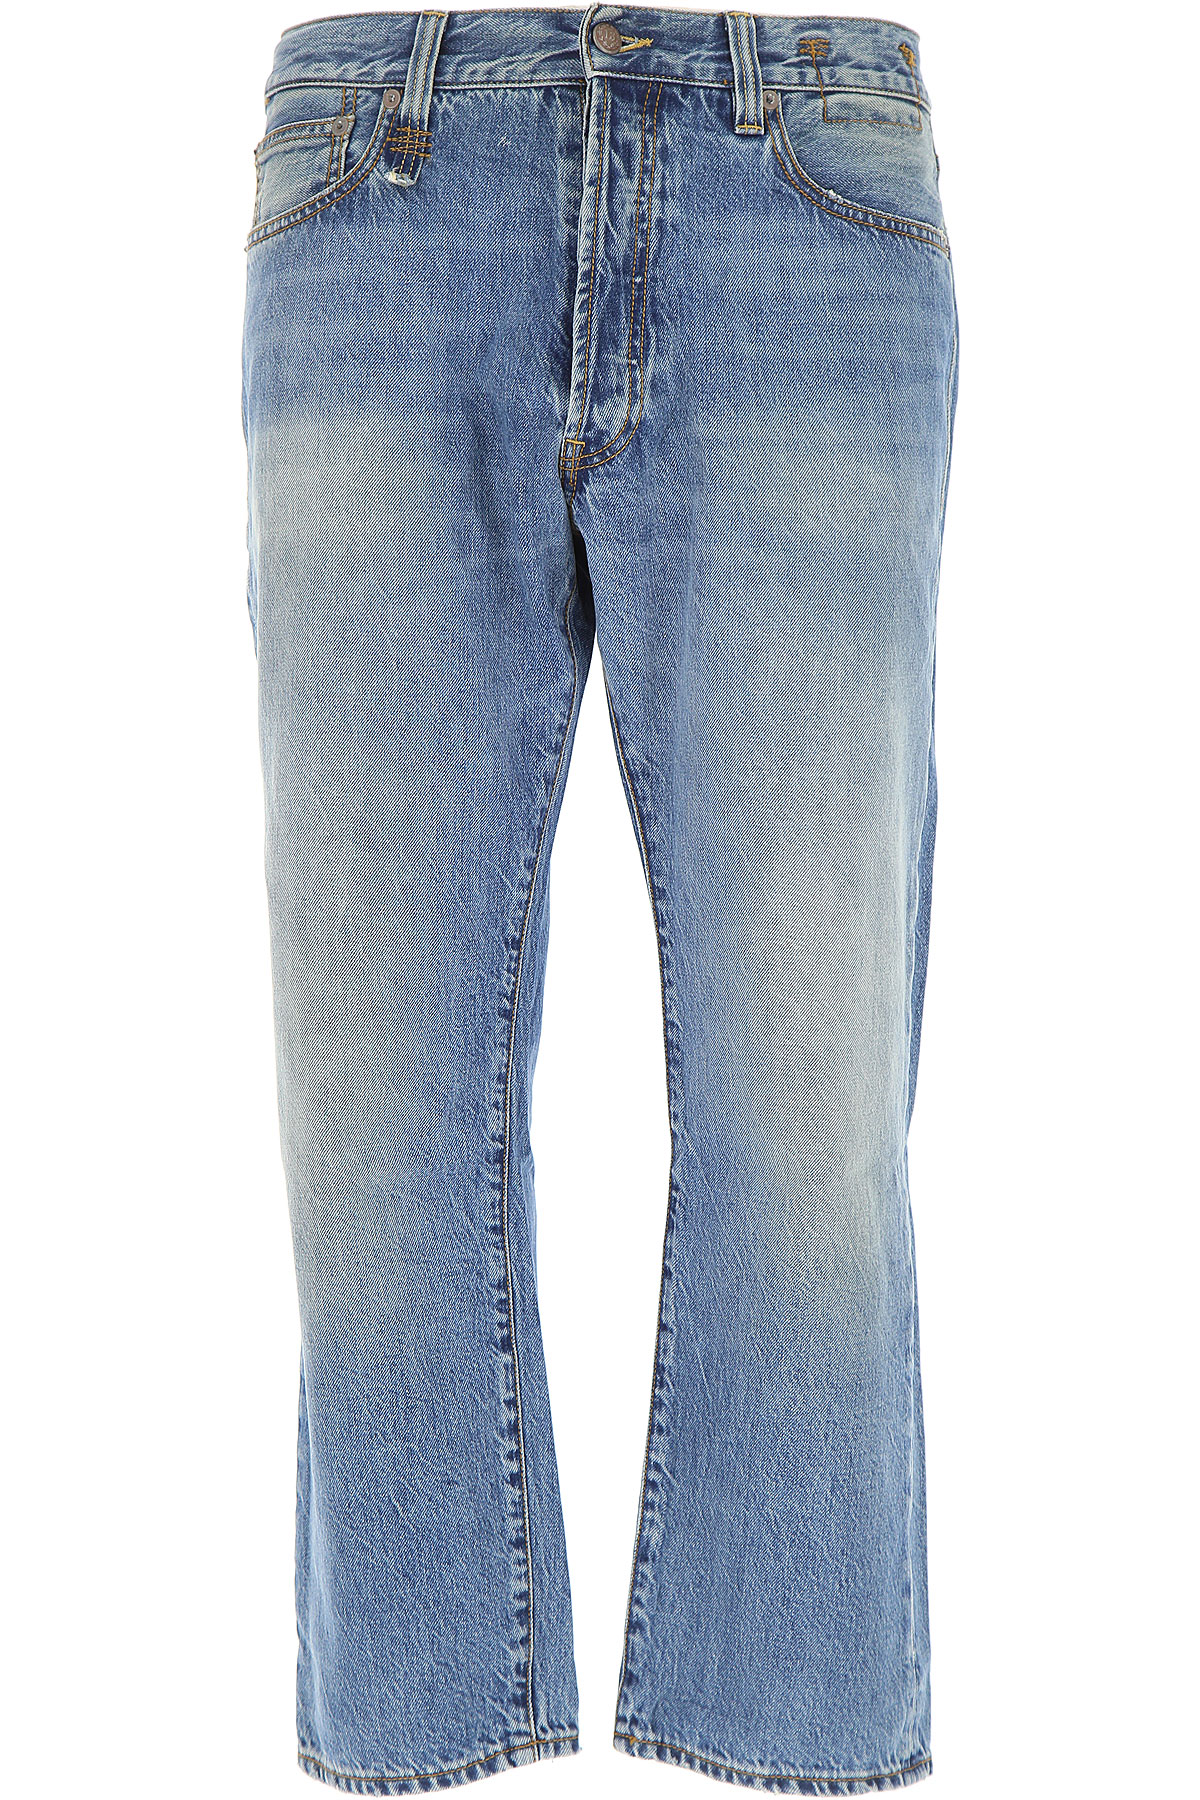 Image of R13 Jeans, Denim, Cotton, 2017, 30 31 32 33 34